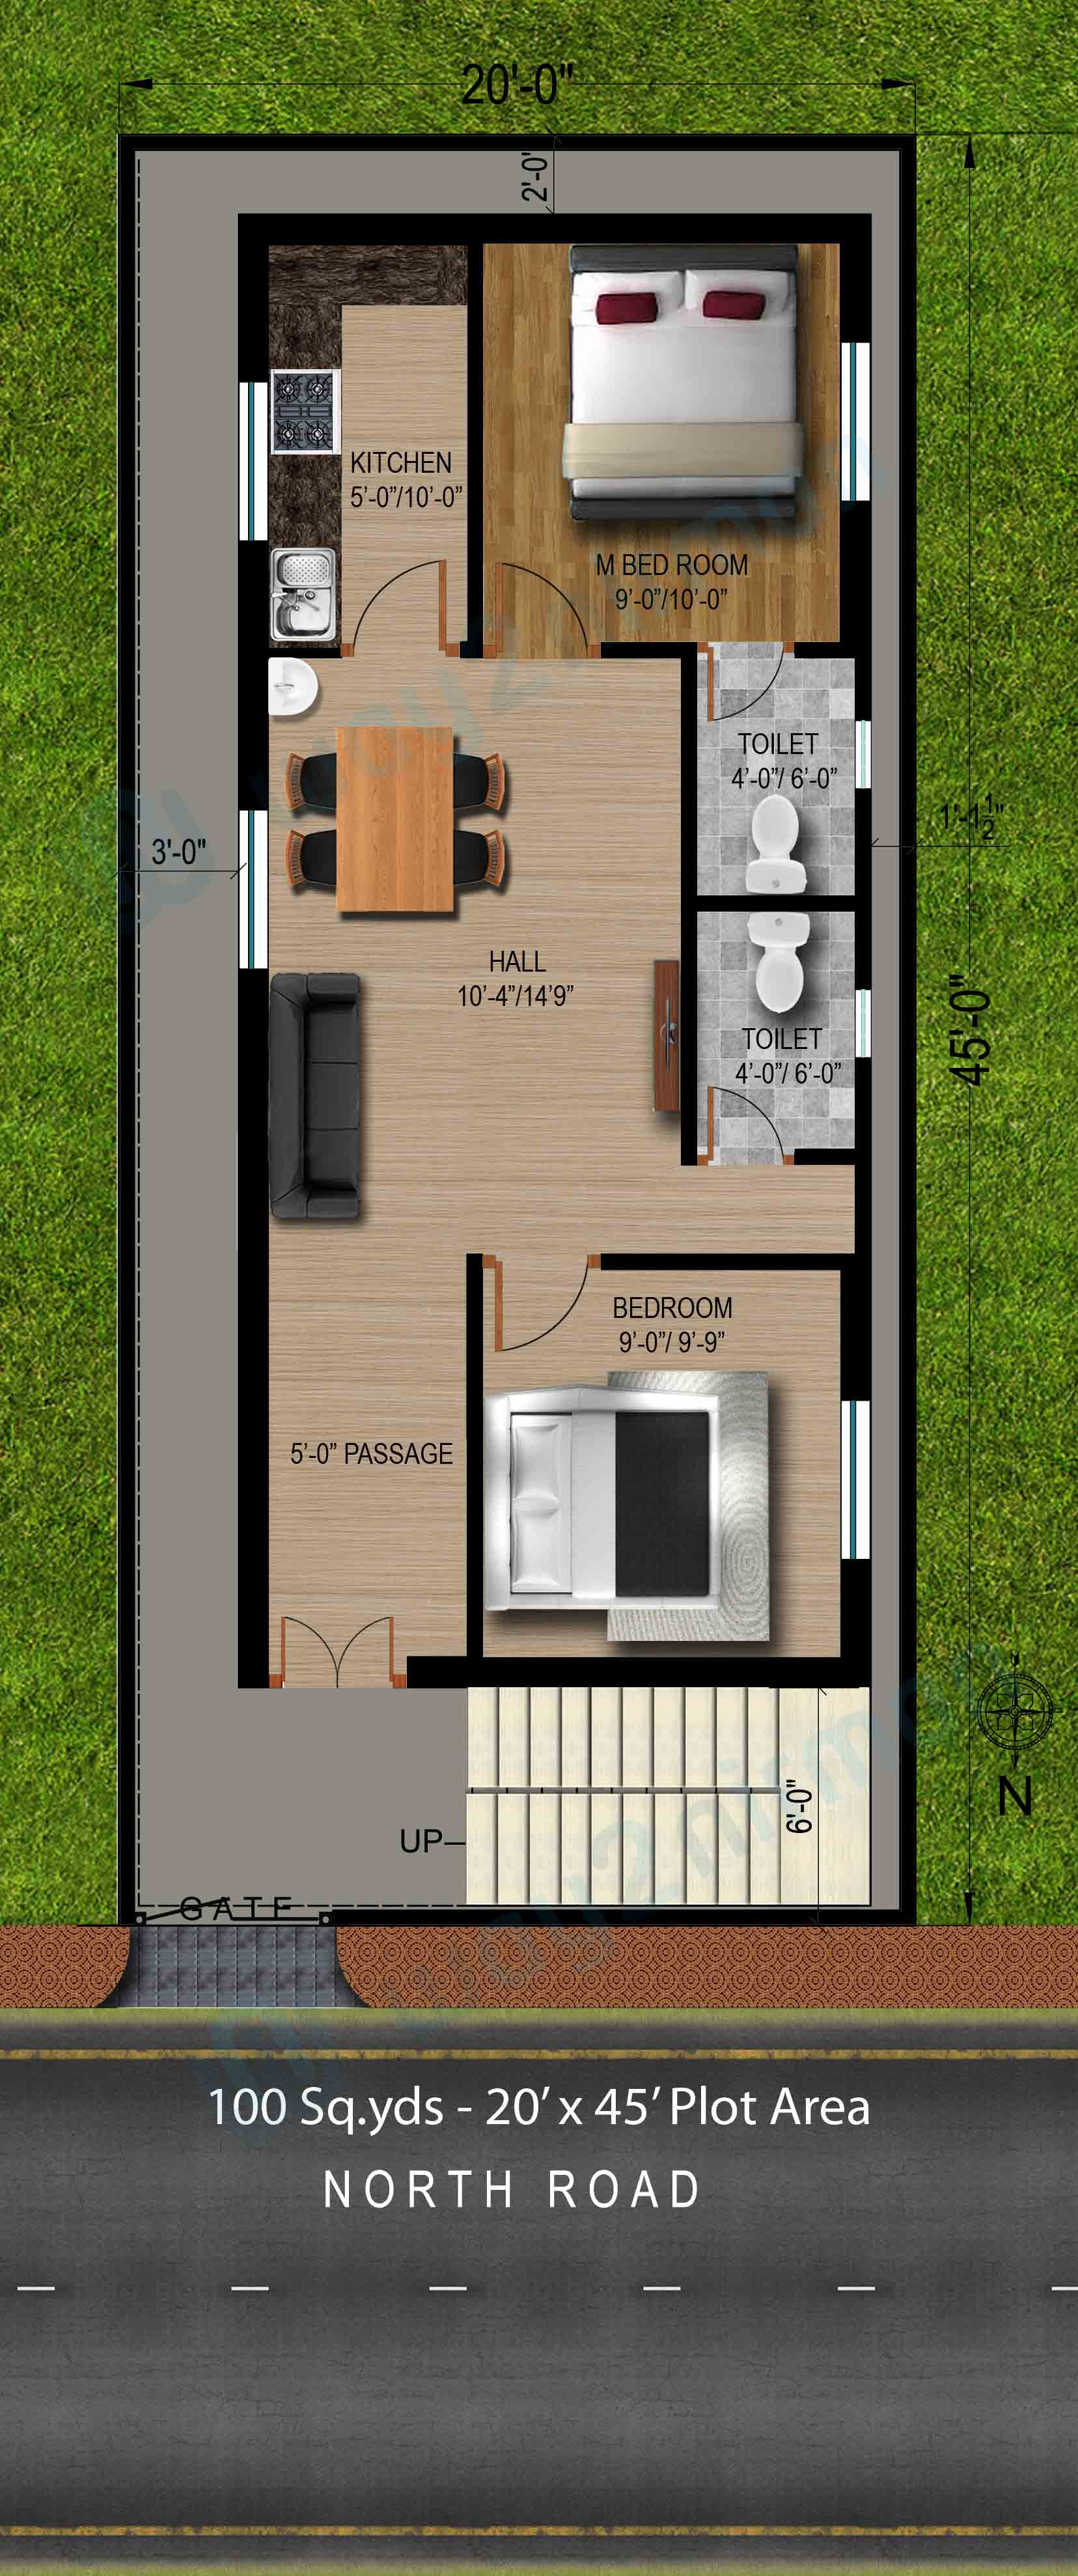 20 by 50 House Designs Awesome 2050 House Plan 2bhk north Facing Autocad Design Pallet